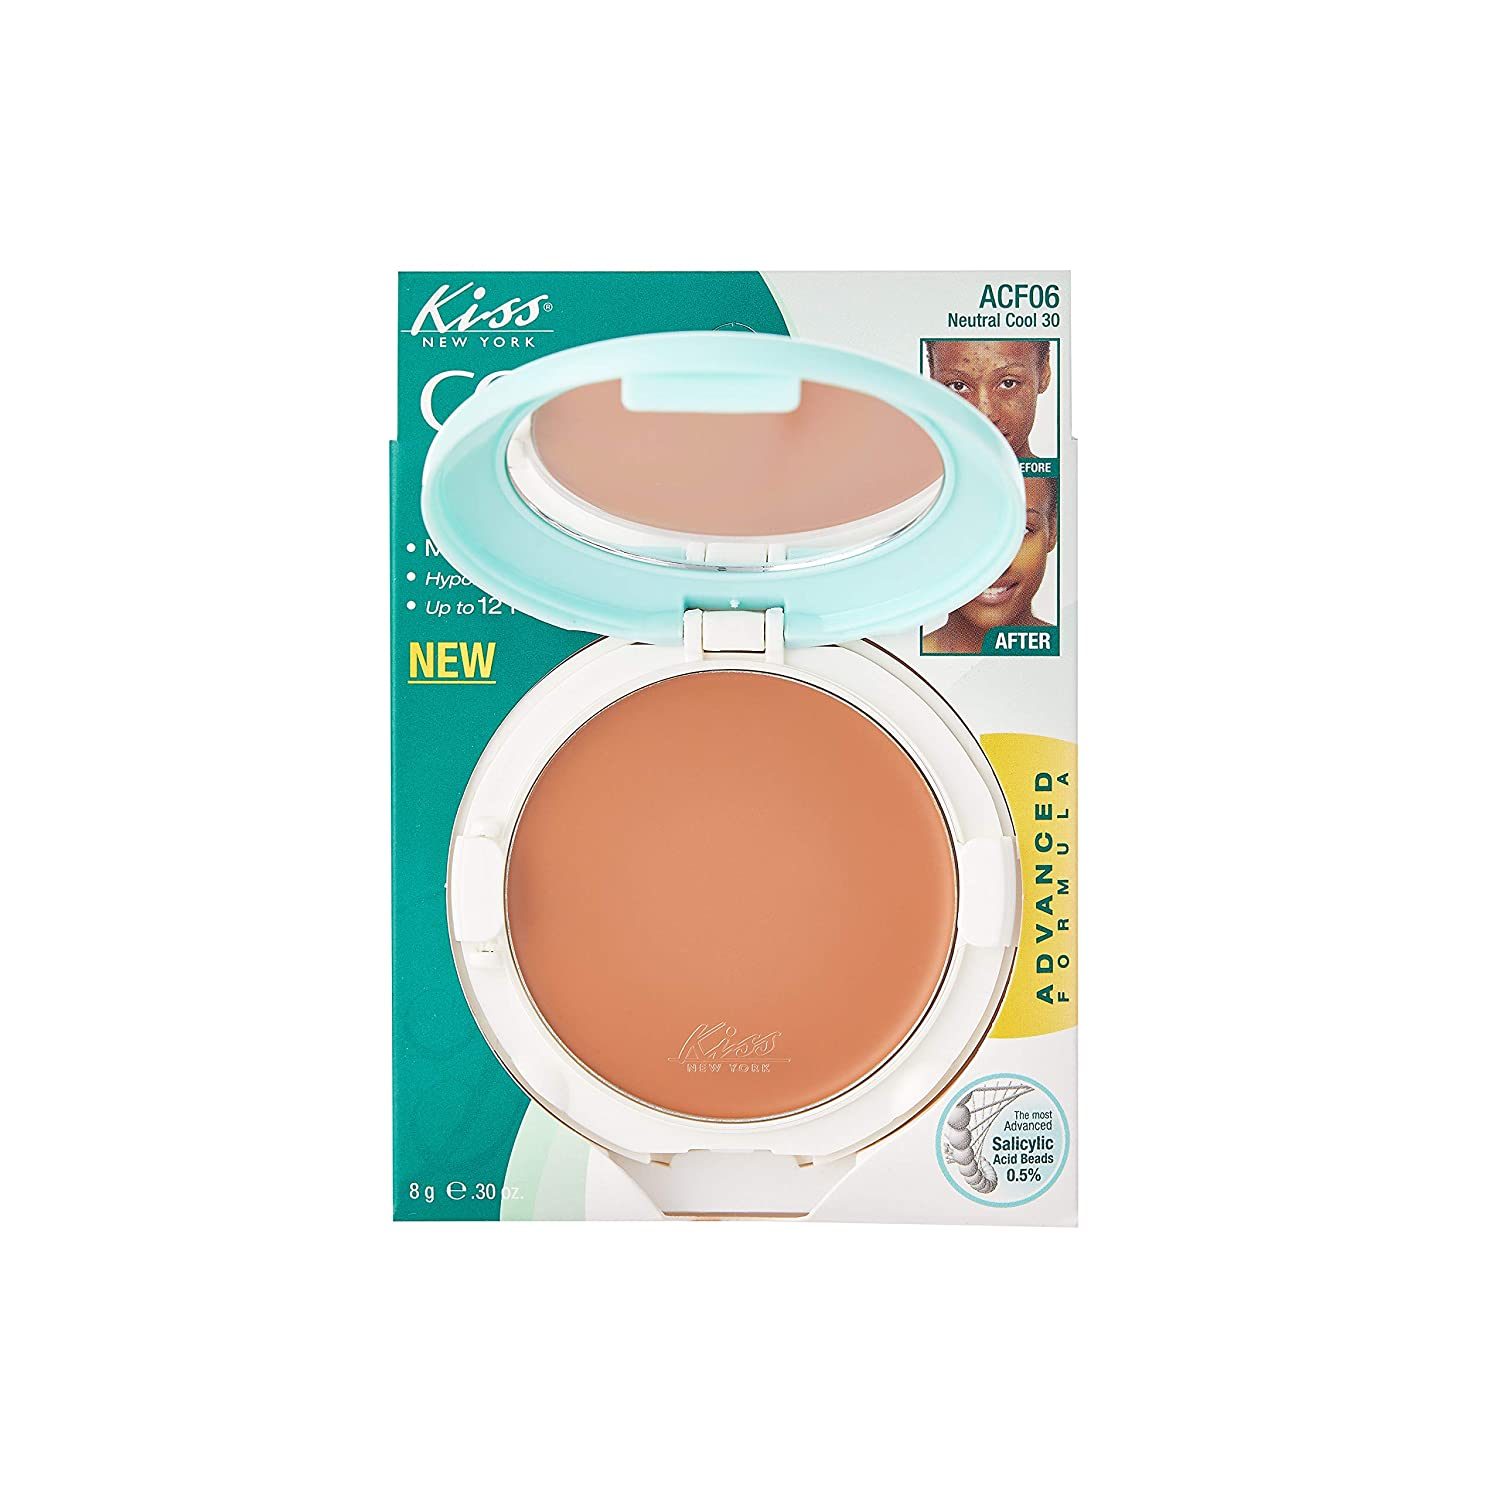 Kiss Cover and Care Cream Foundation Neutral Cool 30 (ACF06)